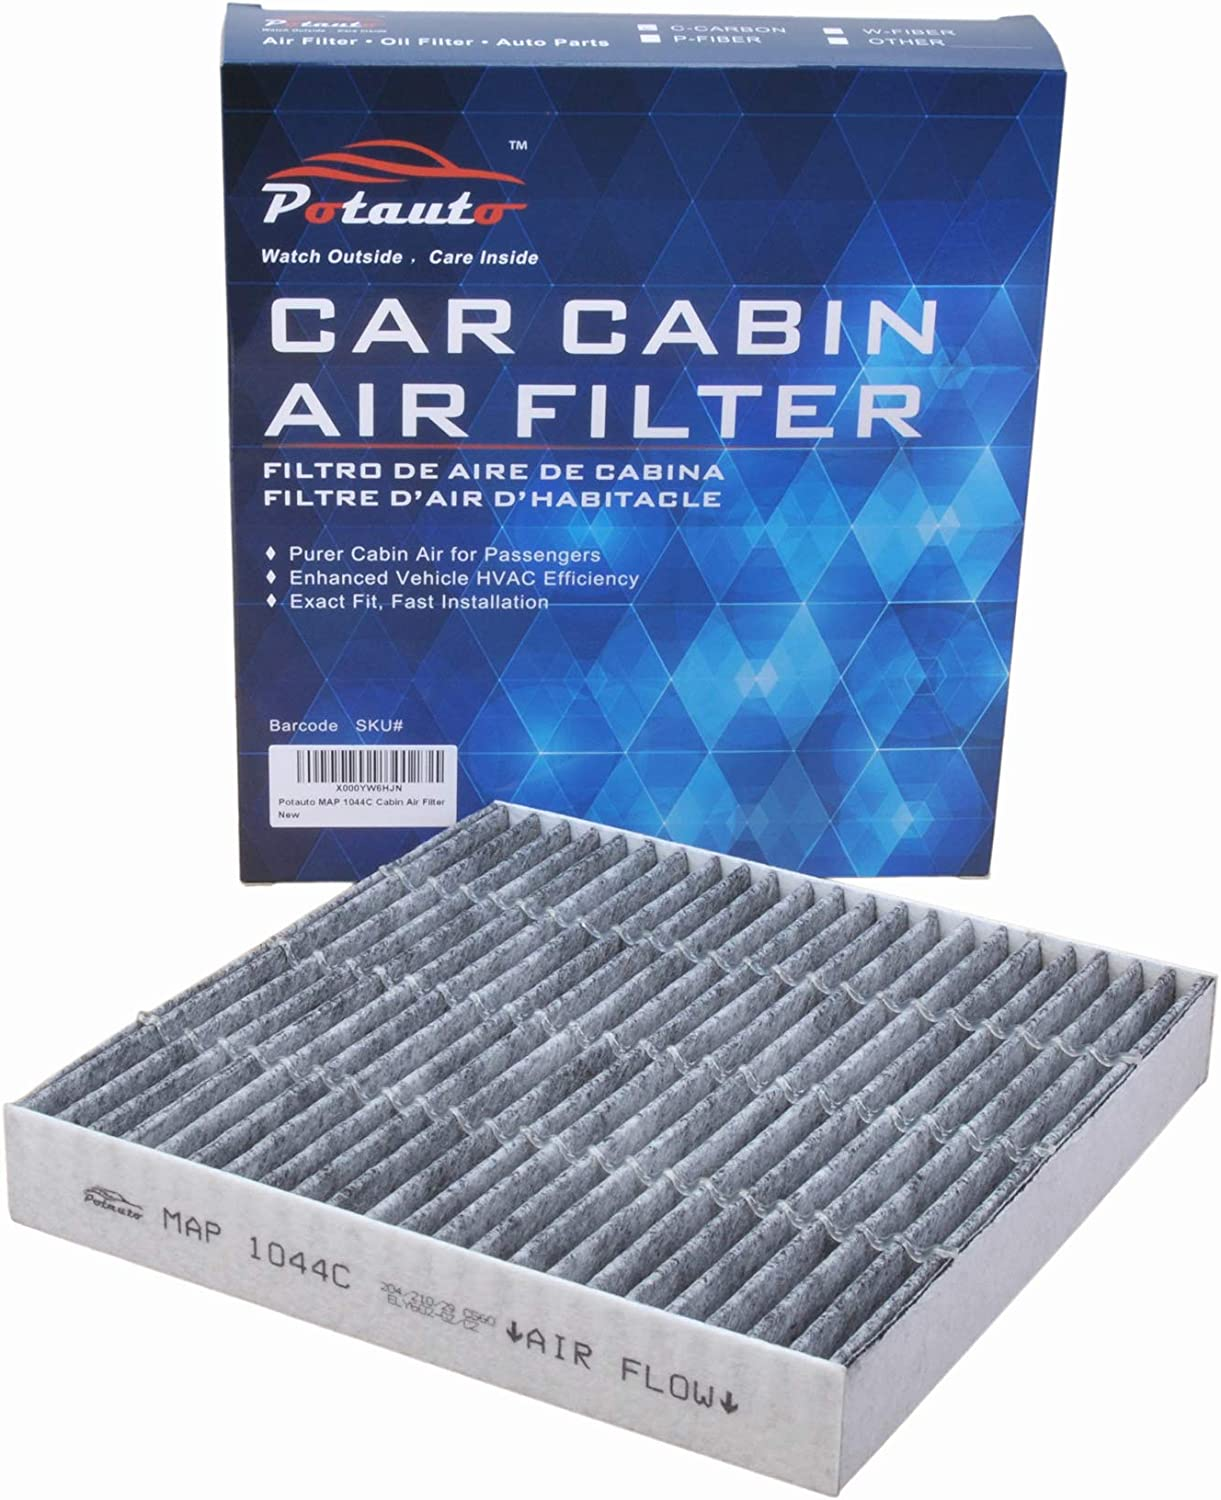 POTAUTO MAP 1021C Activated Carbon Car Cabin Air Filter Compatible Aftermarket Replacement Part CF10775